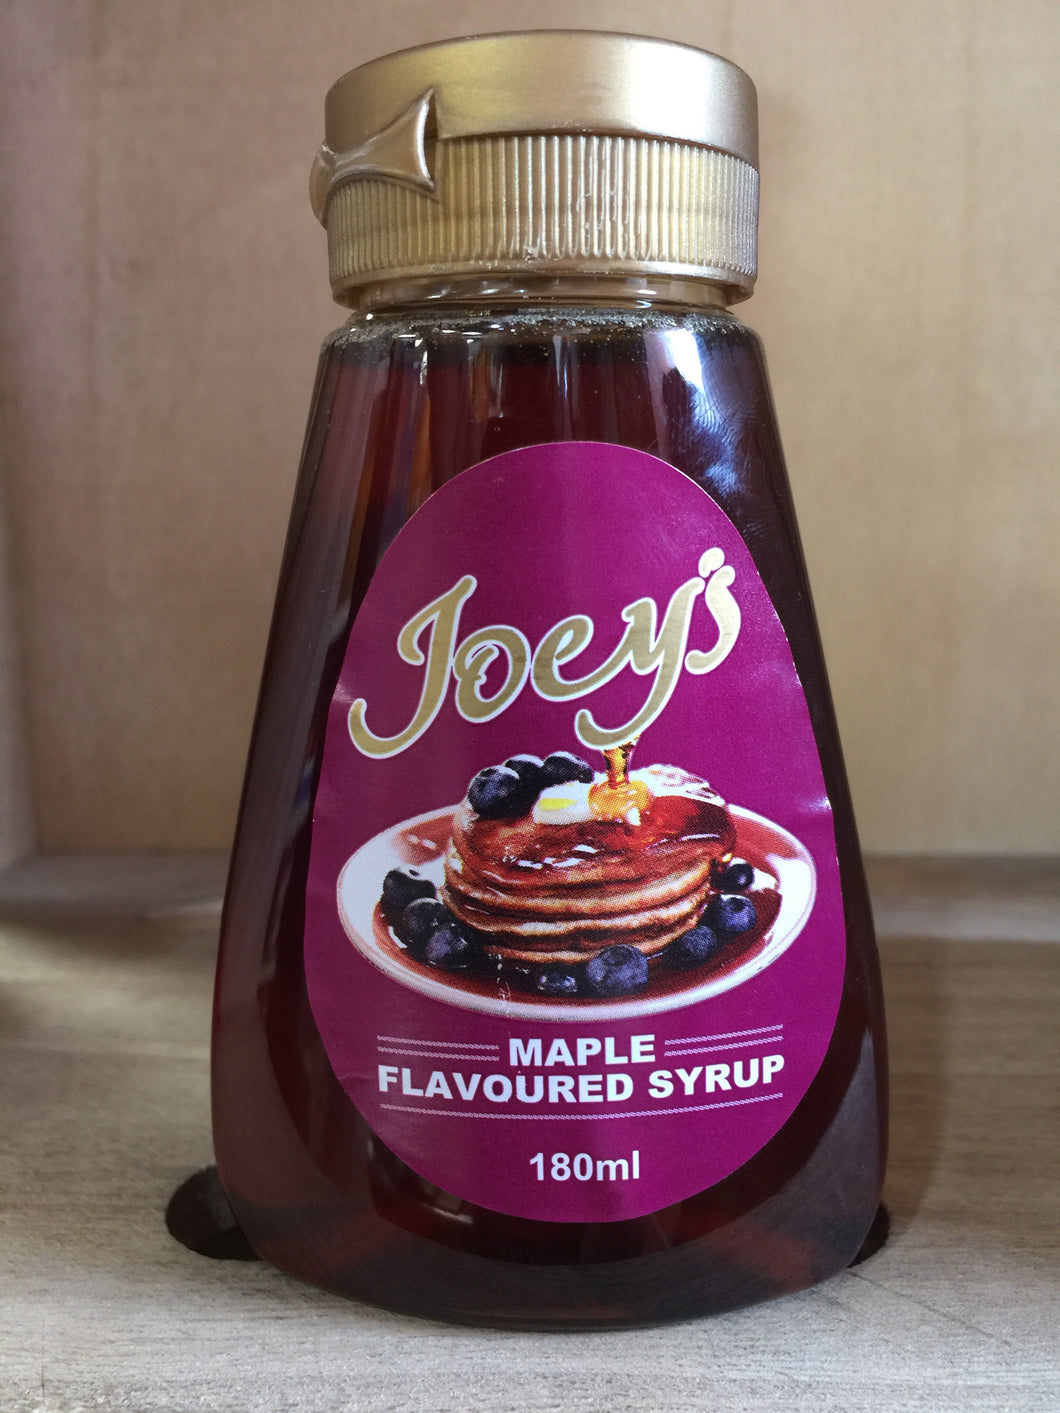 Joey's Maple Flavoured Syrup 180ml